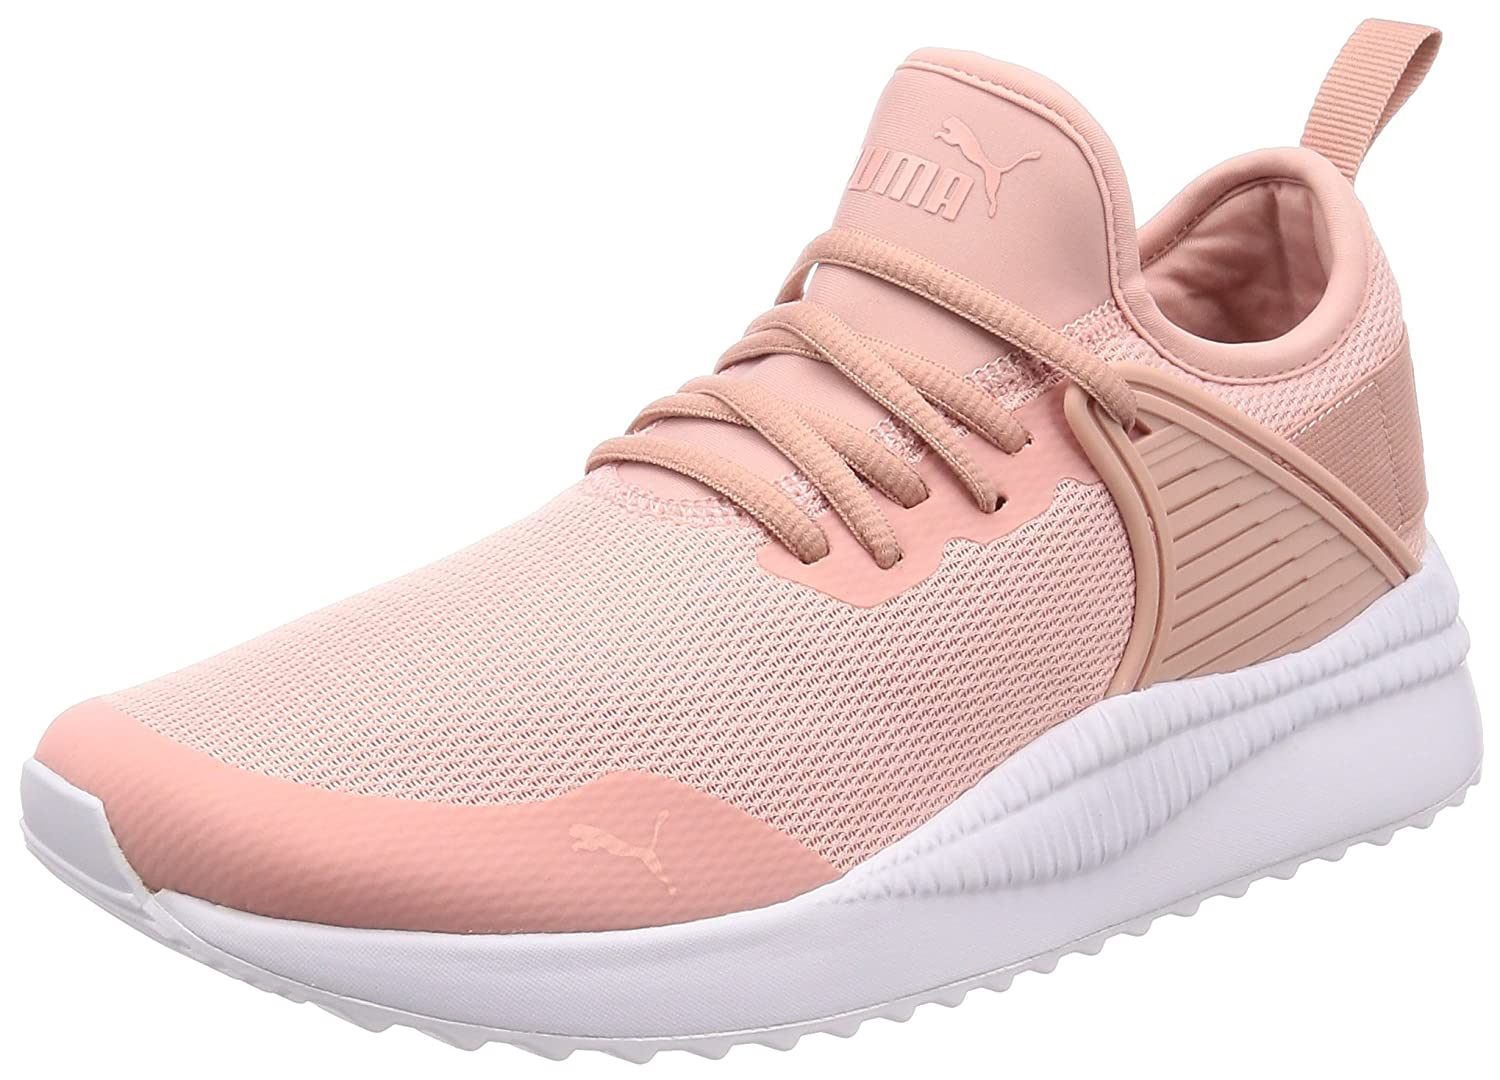 Pacer Next Cage Pink Sneakers